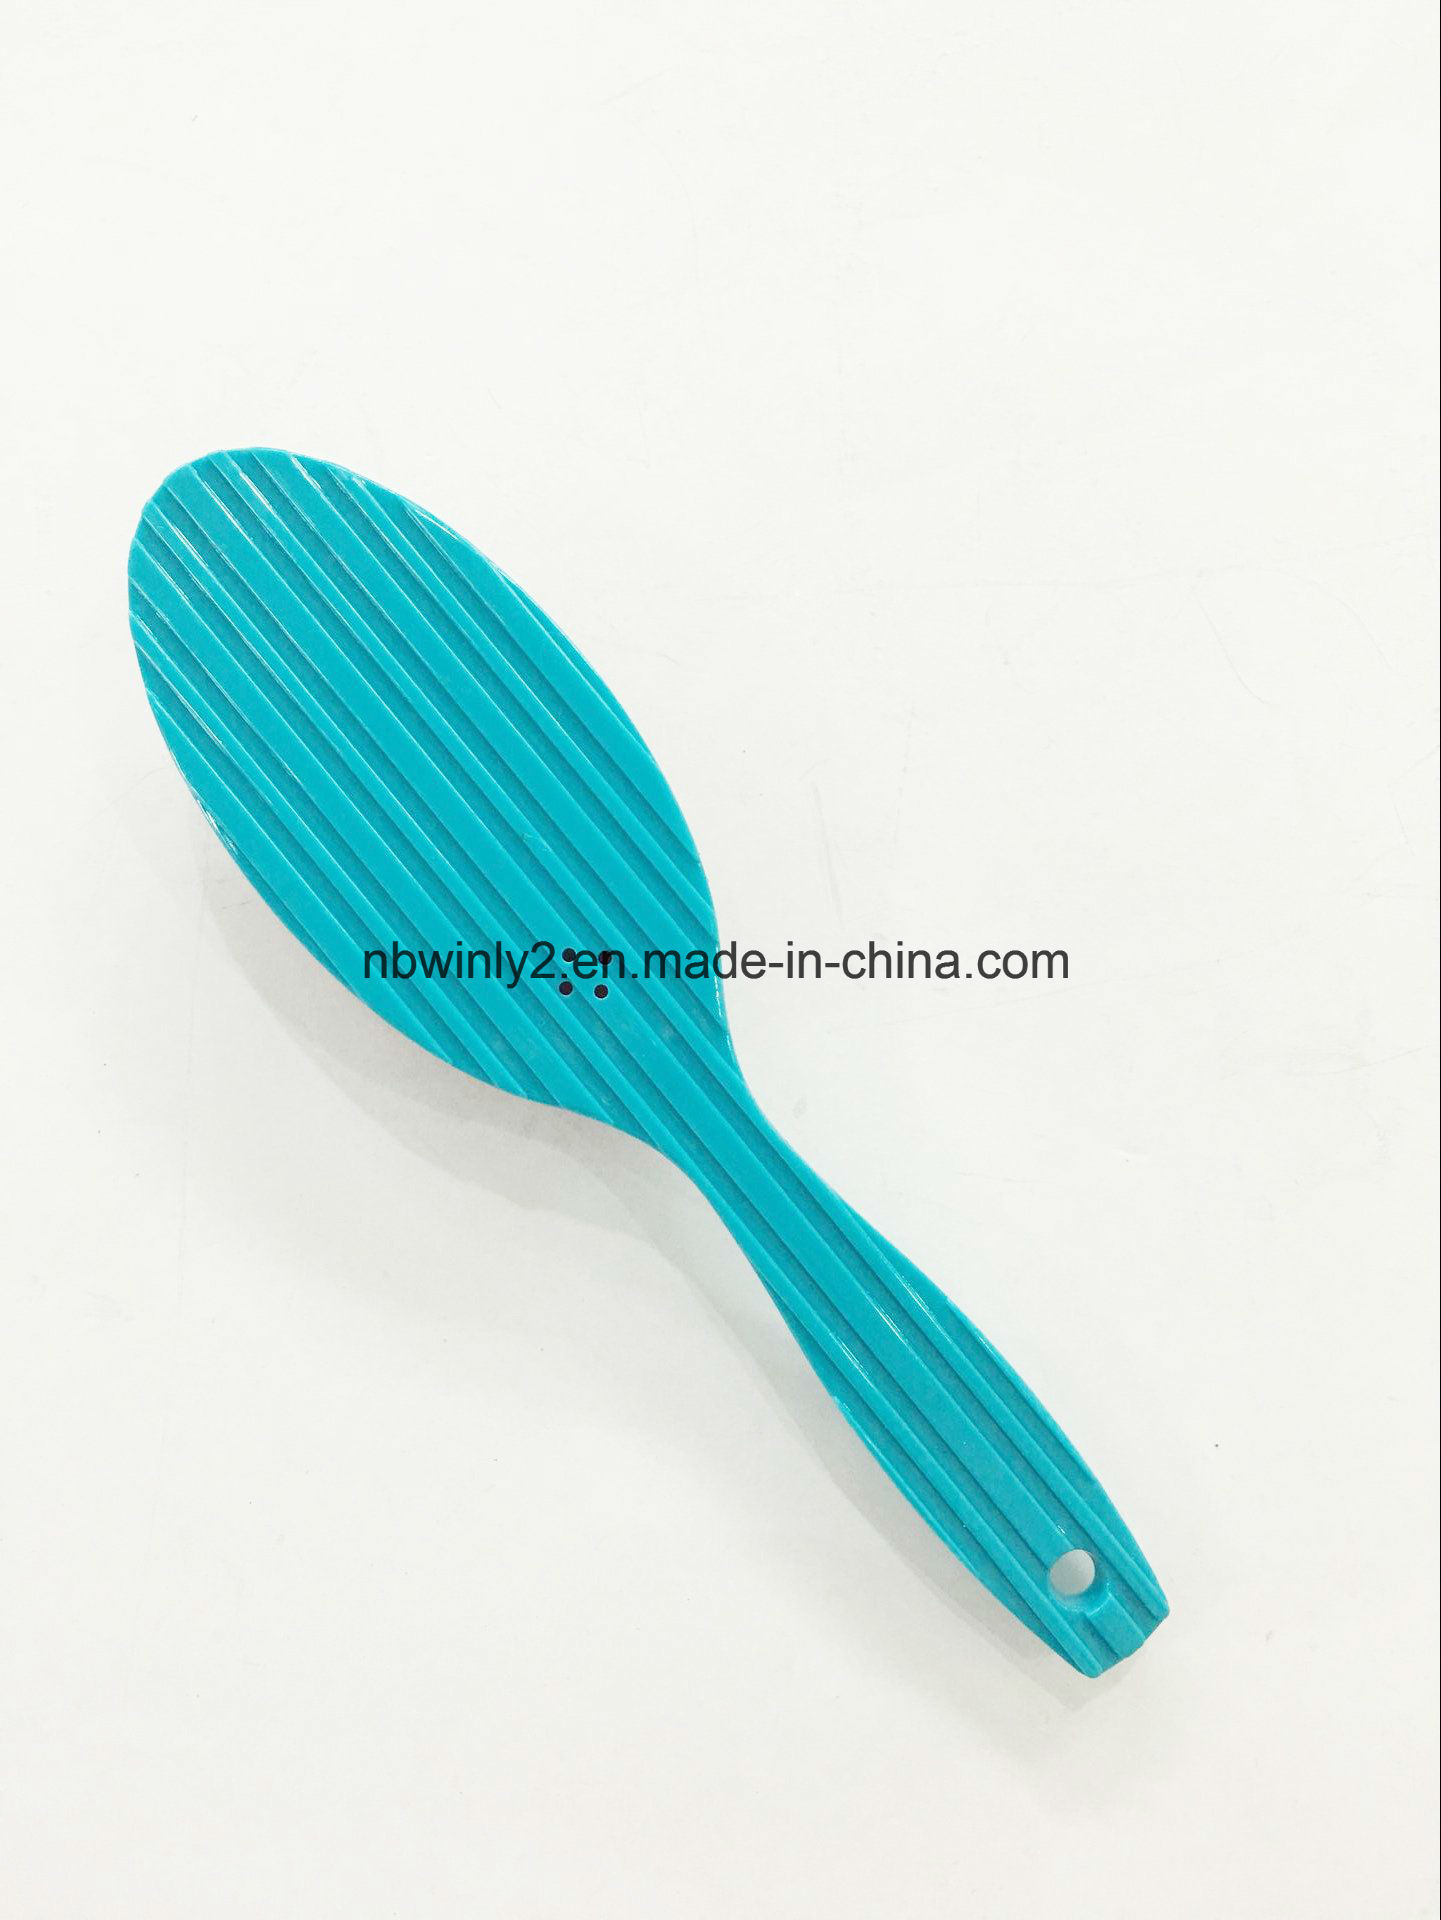 Metal Pin Mini Plastic Hair Brush